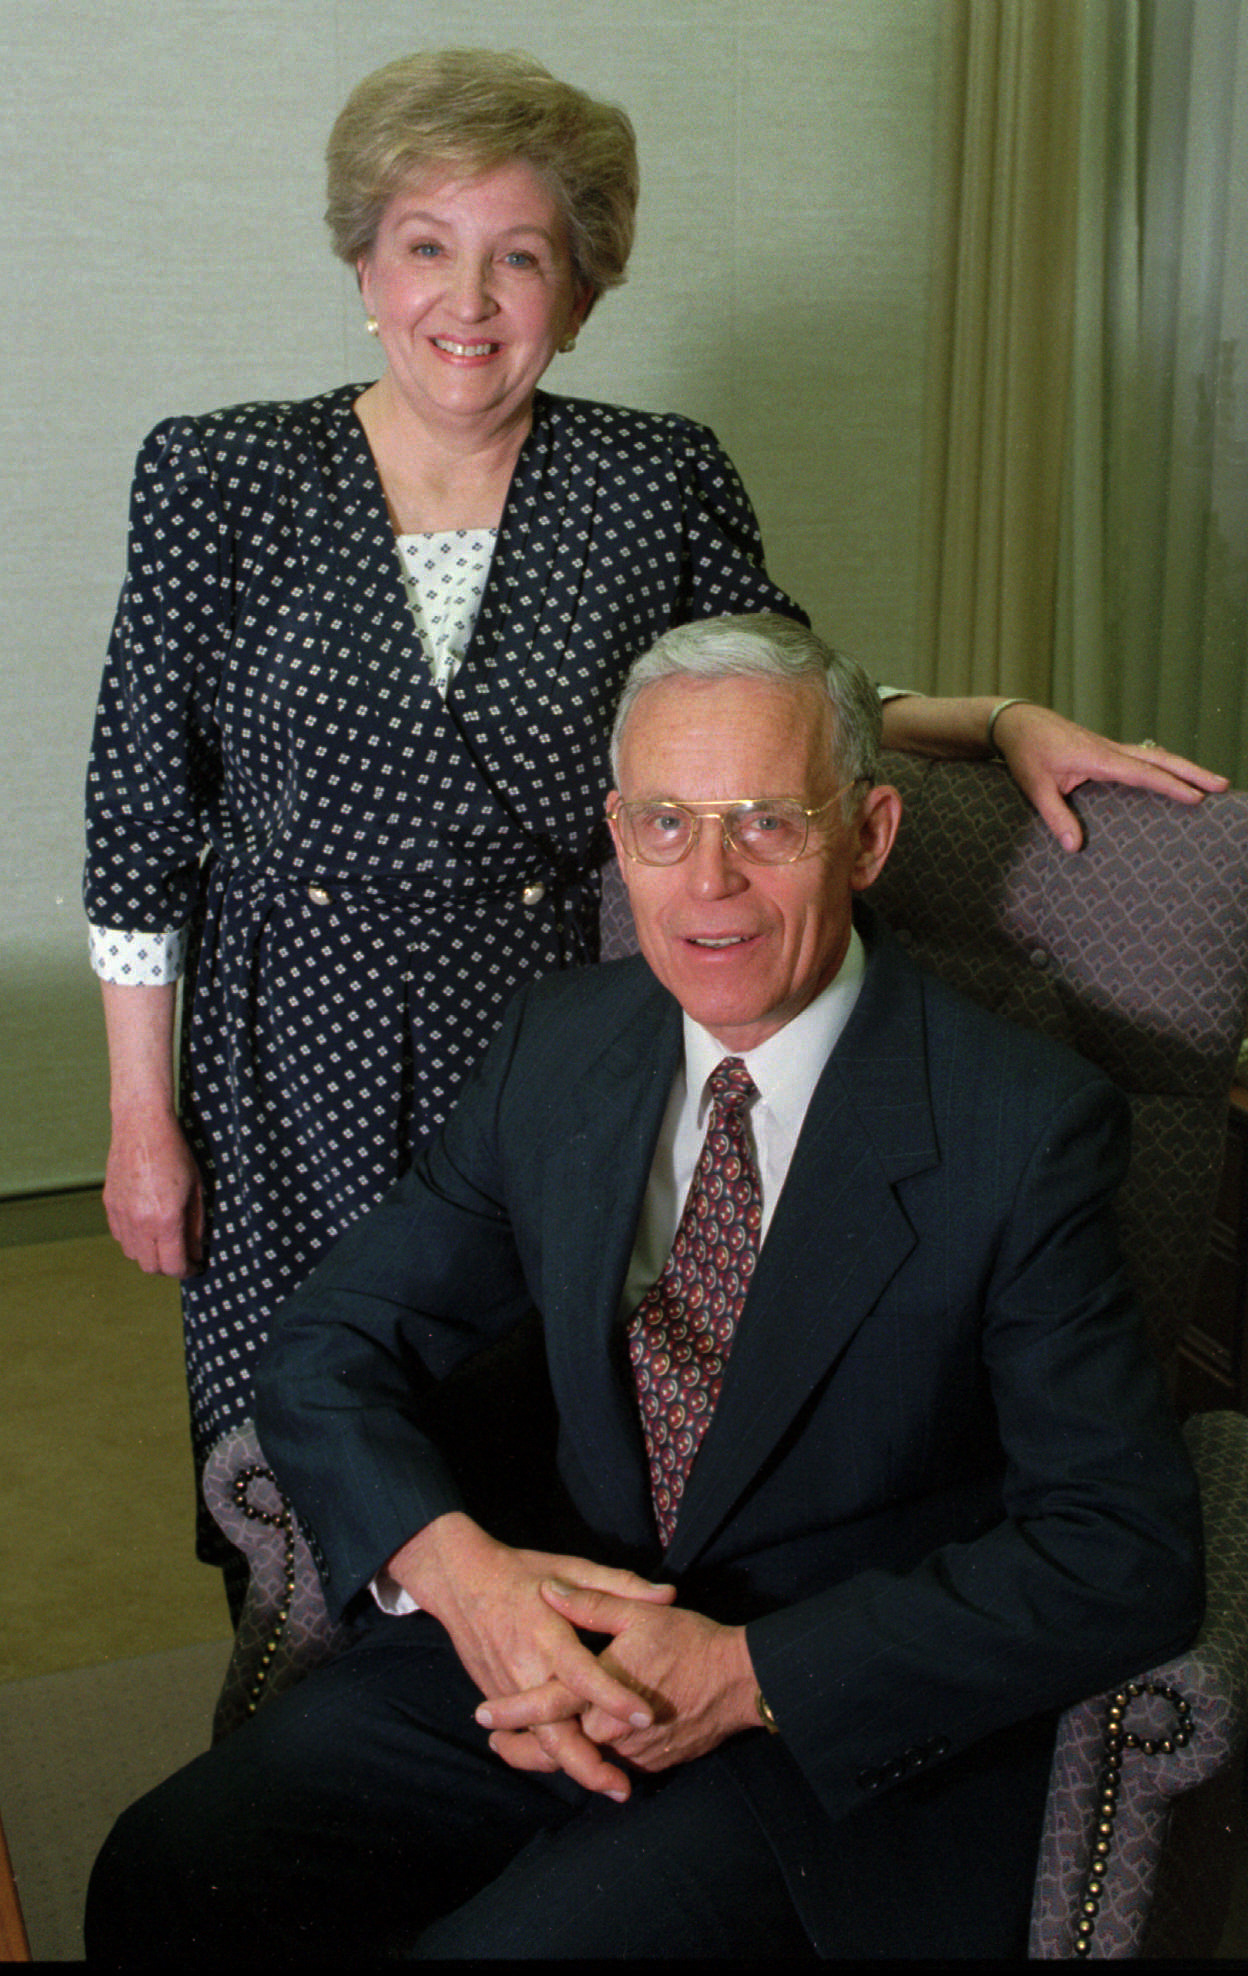 Elder James O. Mason with his wife, Sister Marie Mason, in 1994.